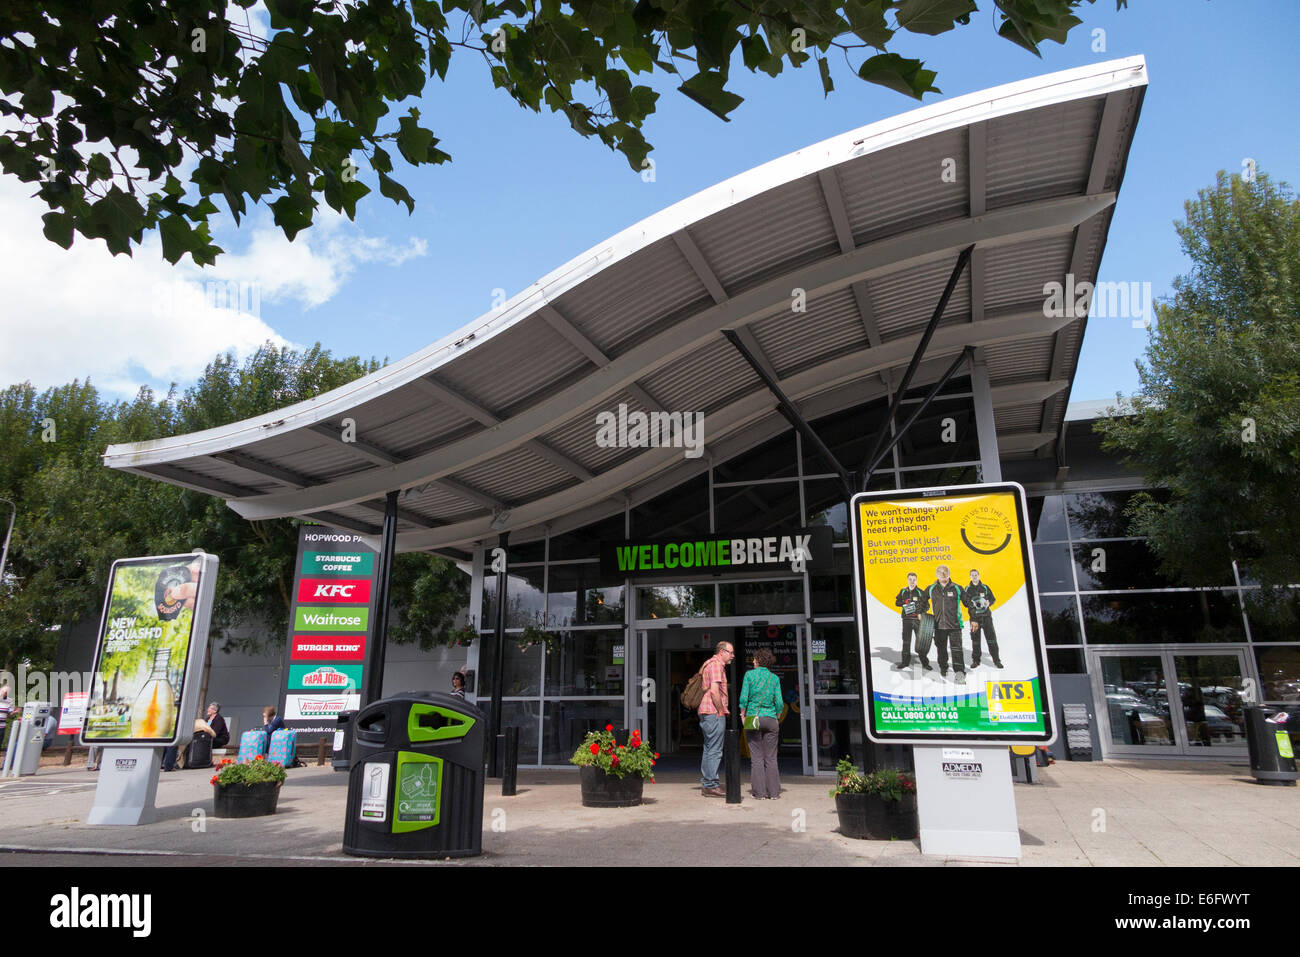 The front of and entrance to the Hopwood Park Welcome Break motorway Services on the M42, south of Birmingham. UK Stock Photo